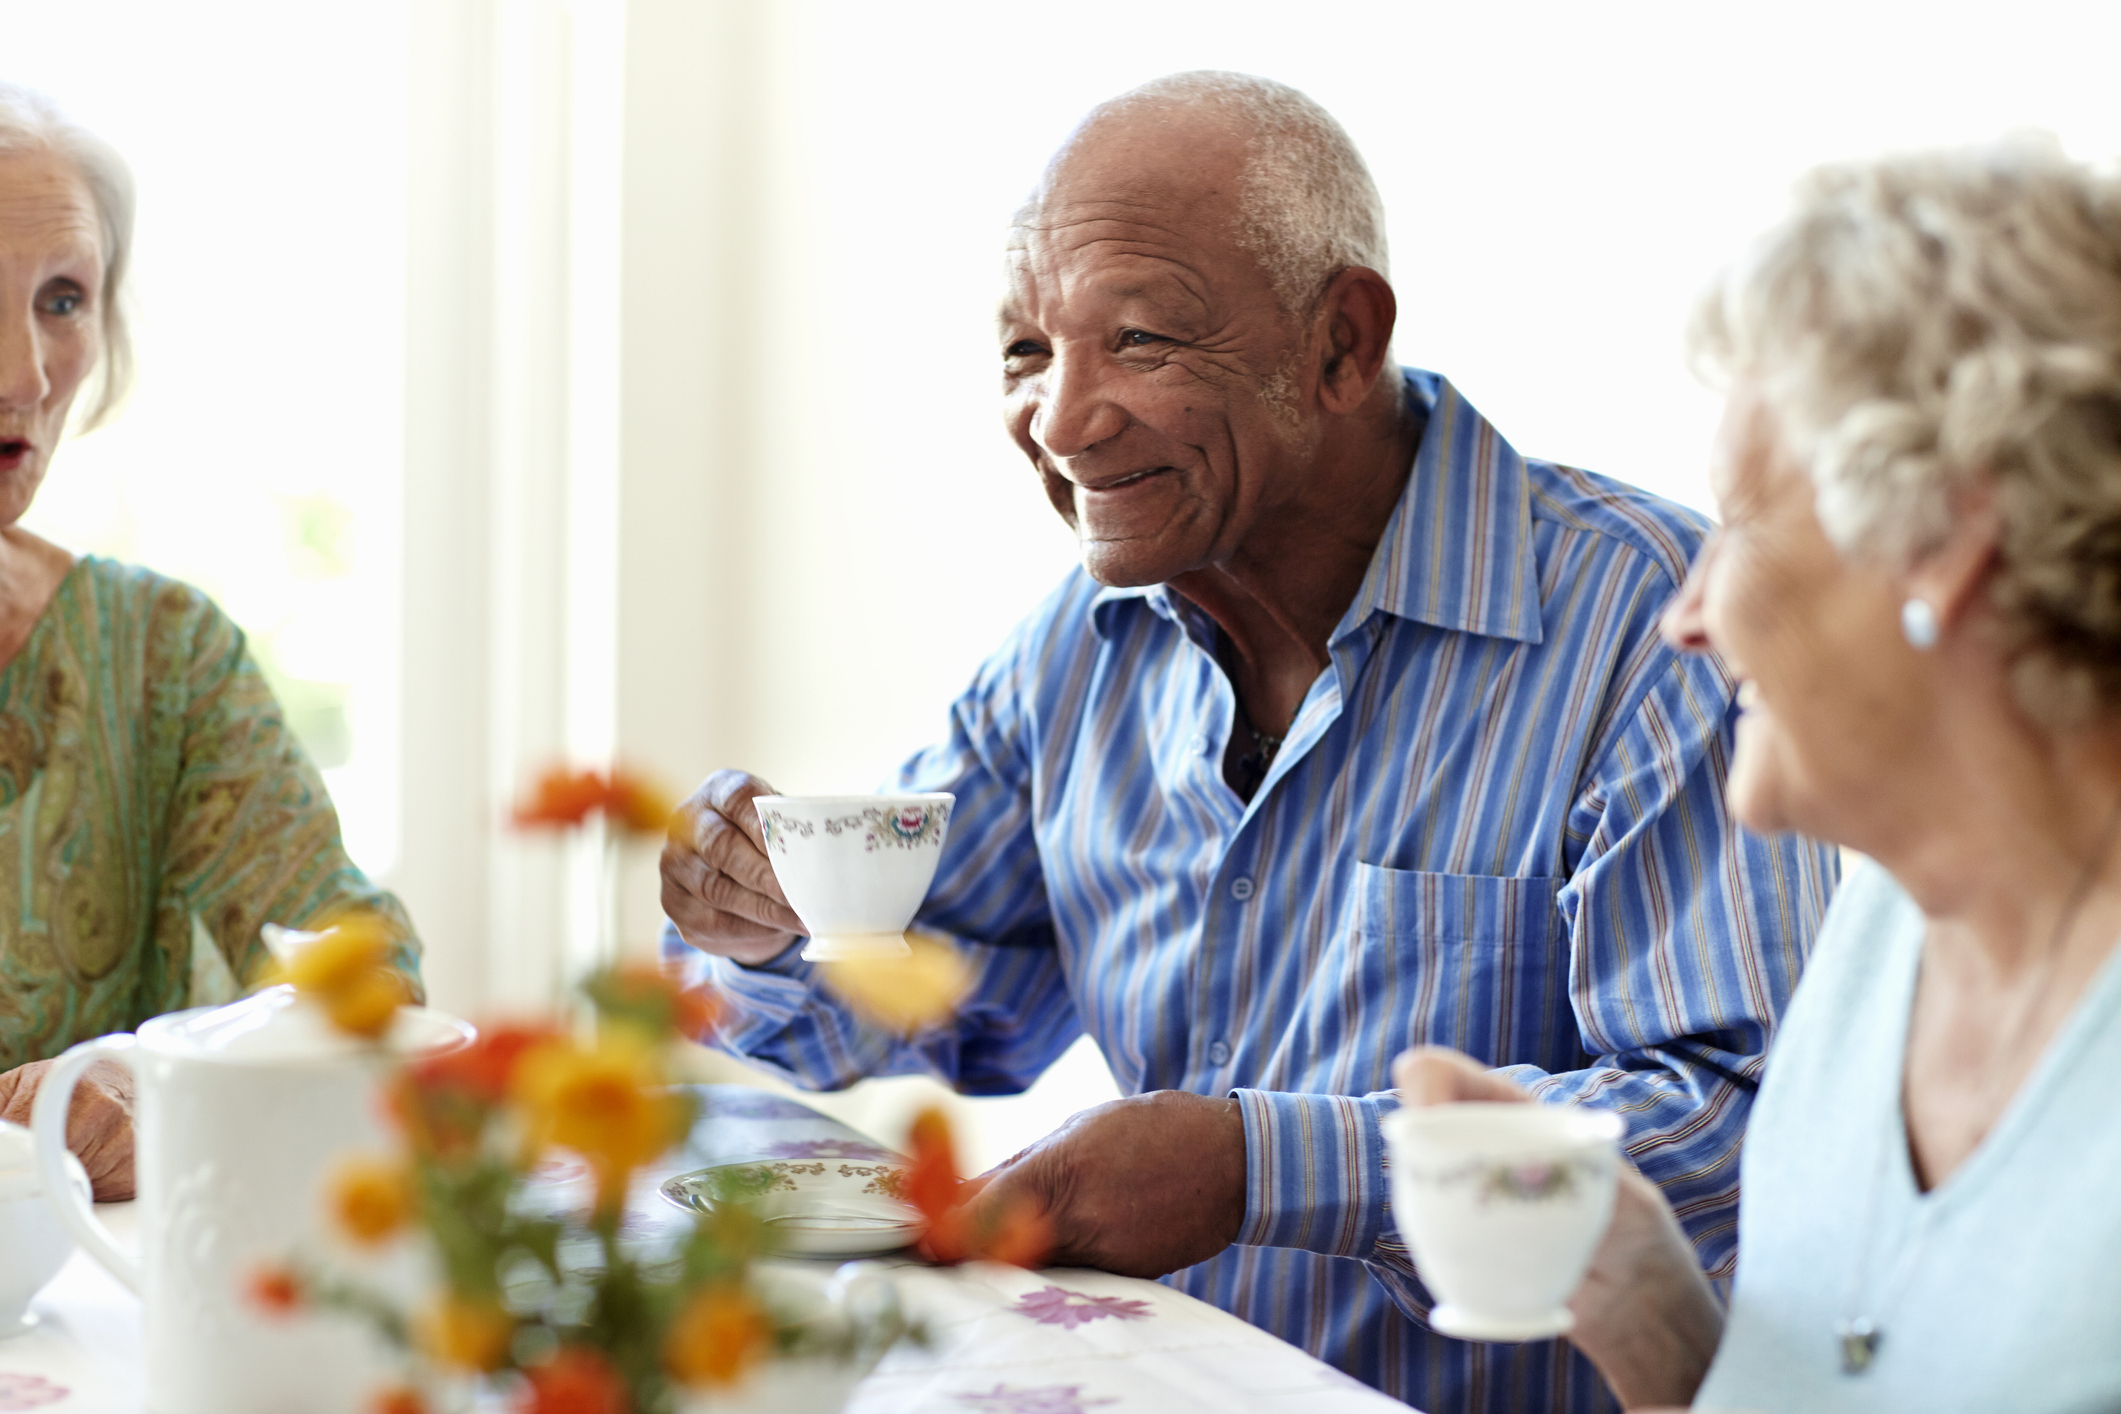 Factors to Consider When Matching a Senior to an Assisted Living Community